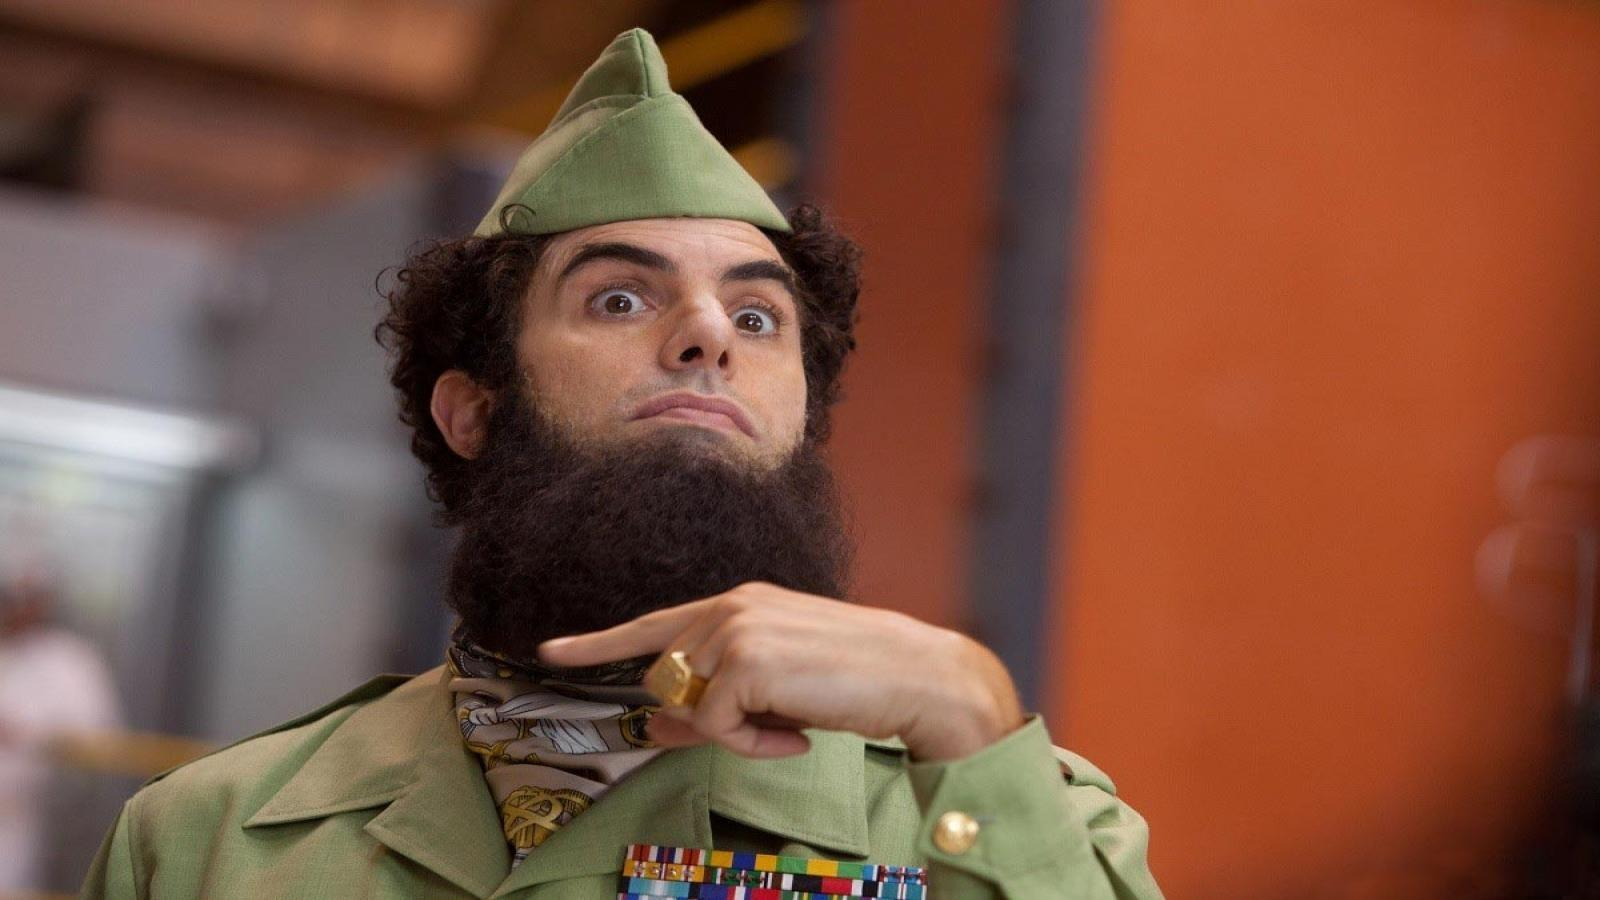 The Dictator Wallpapers - Wallpaper Cave